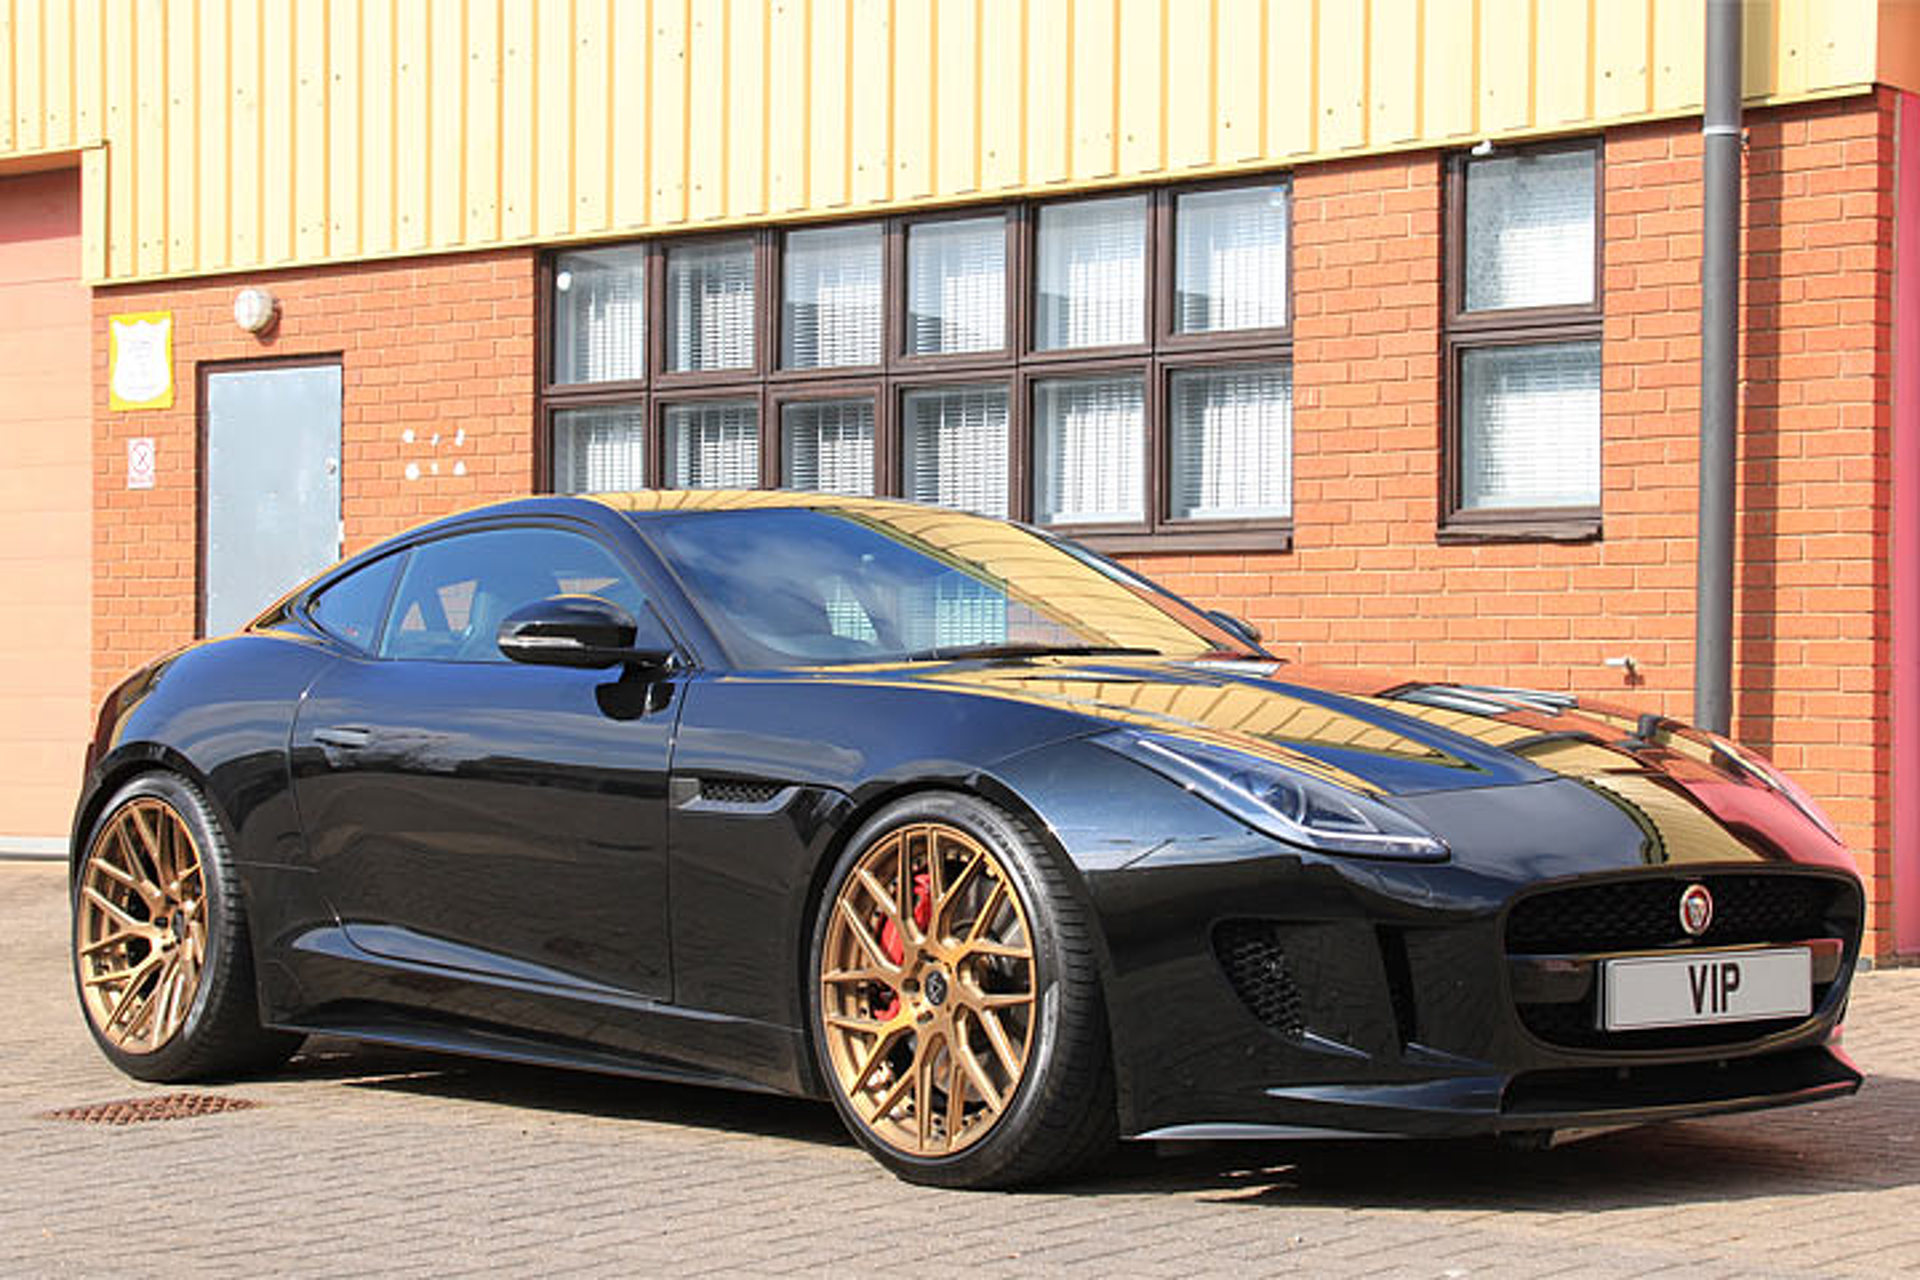 'Project Predator' Gives the Jaguar F-Type an Extra 100HP